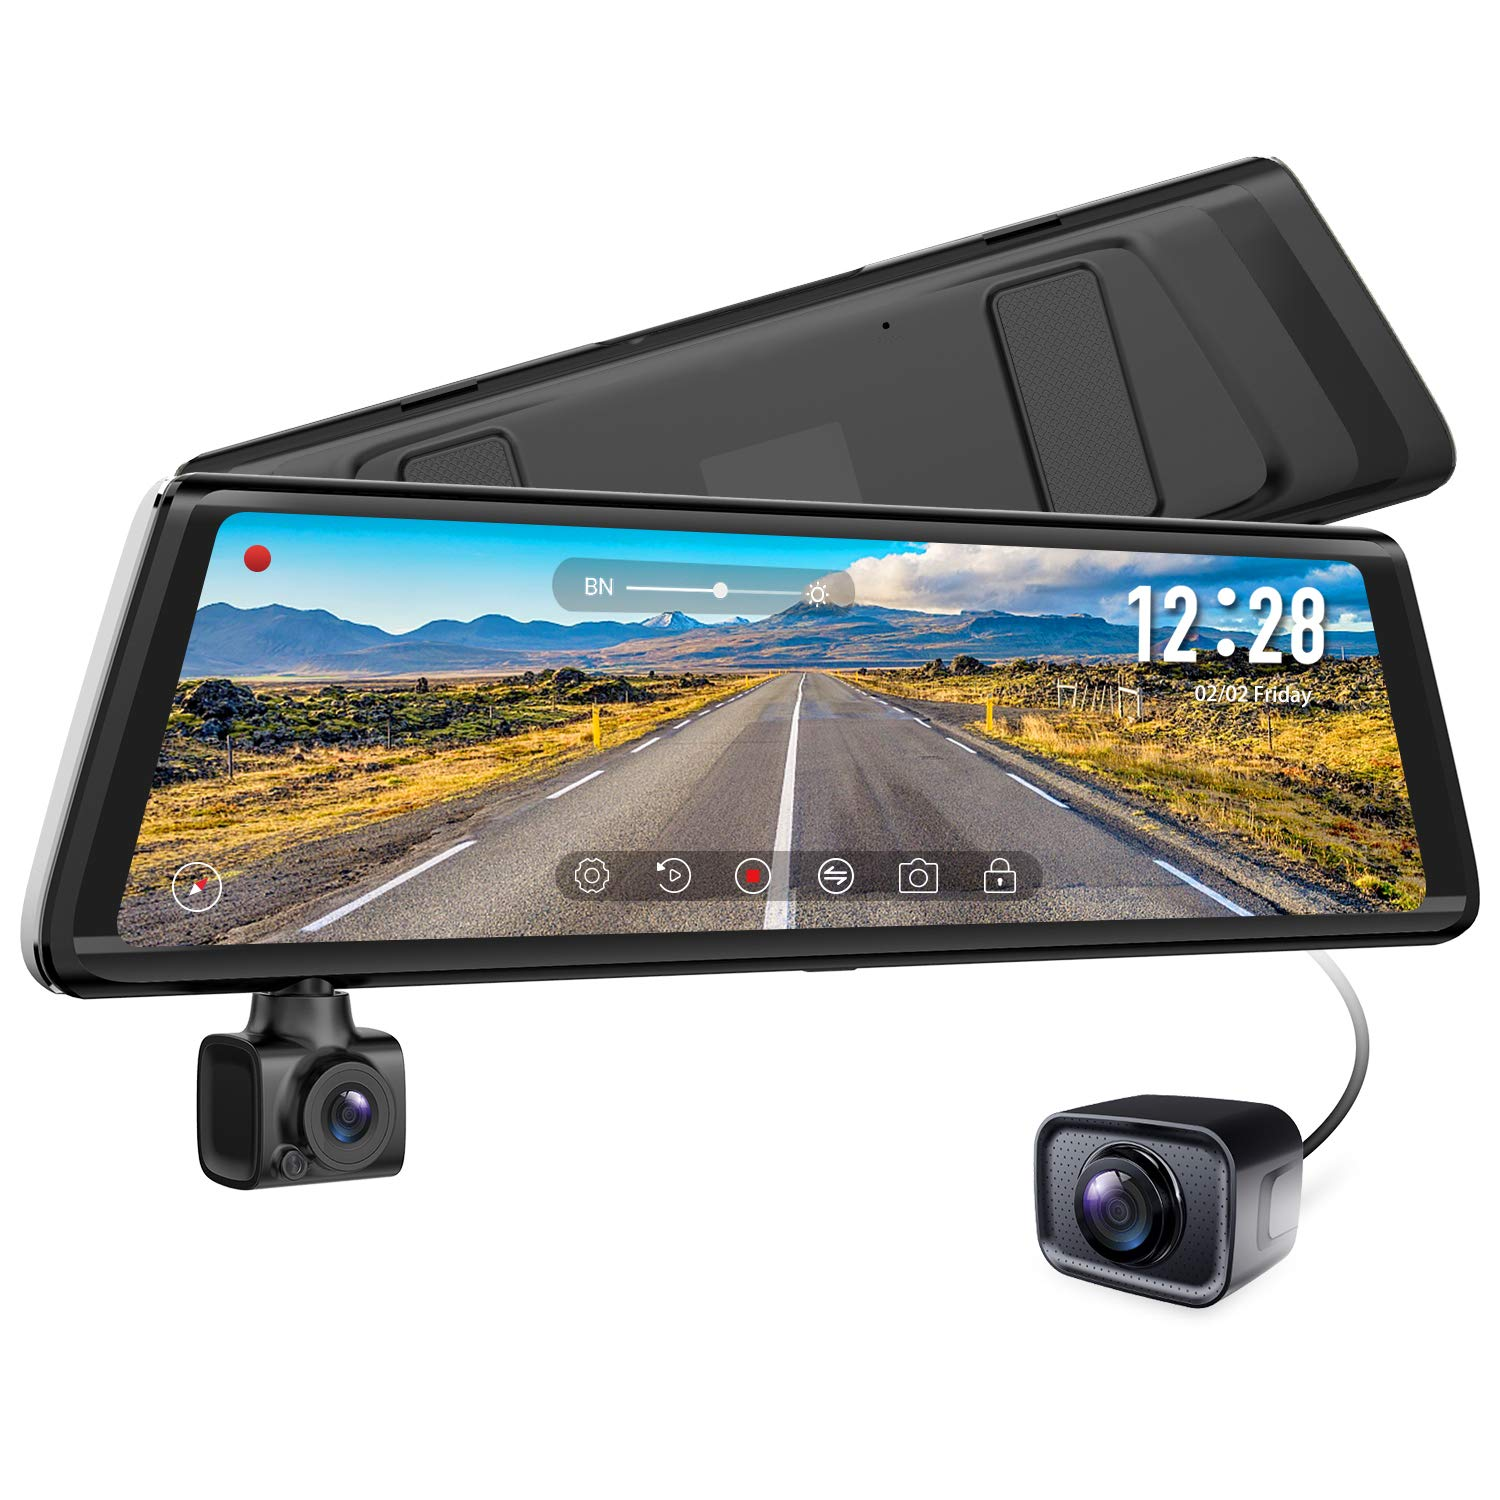 AUTO VOX A1 Uber Stream Media Mirror Dash Cam,The 3-in-1 Rear View Mirror,1080P Rotating Front or Inside Dash Camera,720P AHD Waterproof Backup Camera with Parking Mode,Loop Recording,G-Sensor,WDR by AUTO-VOX